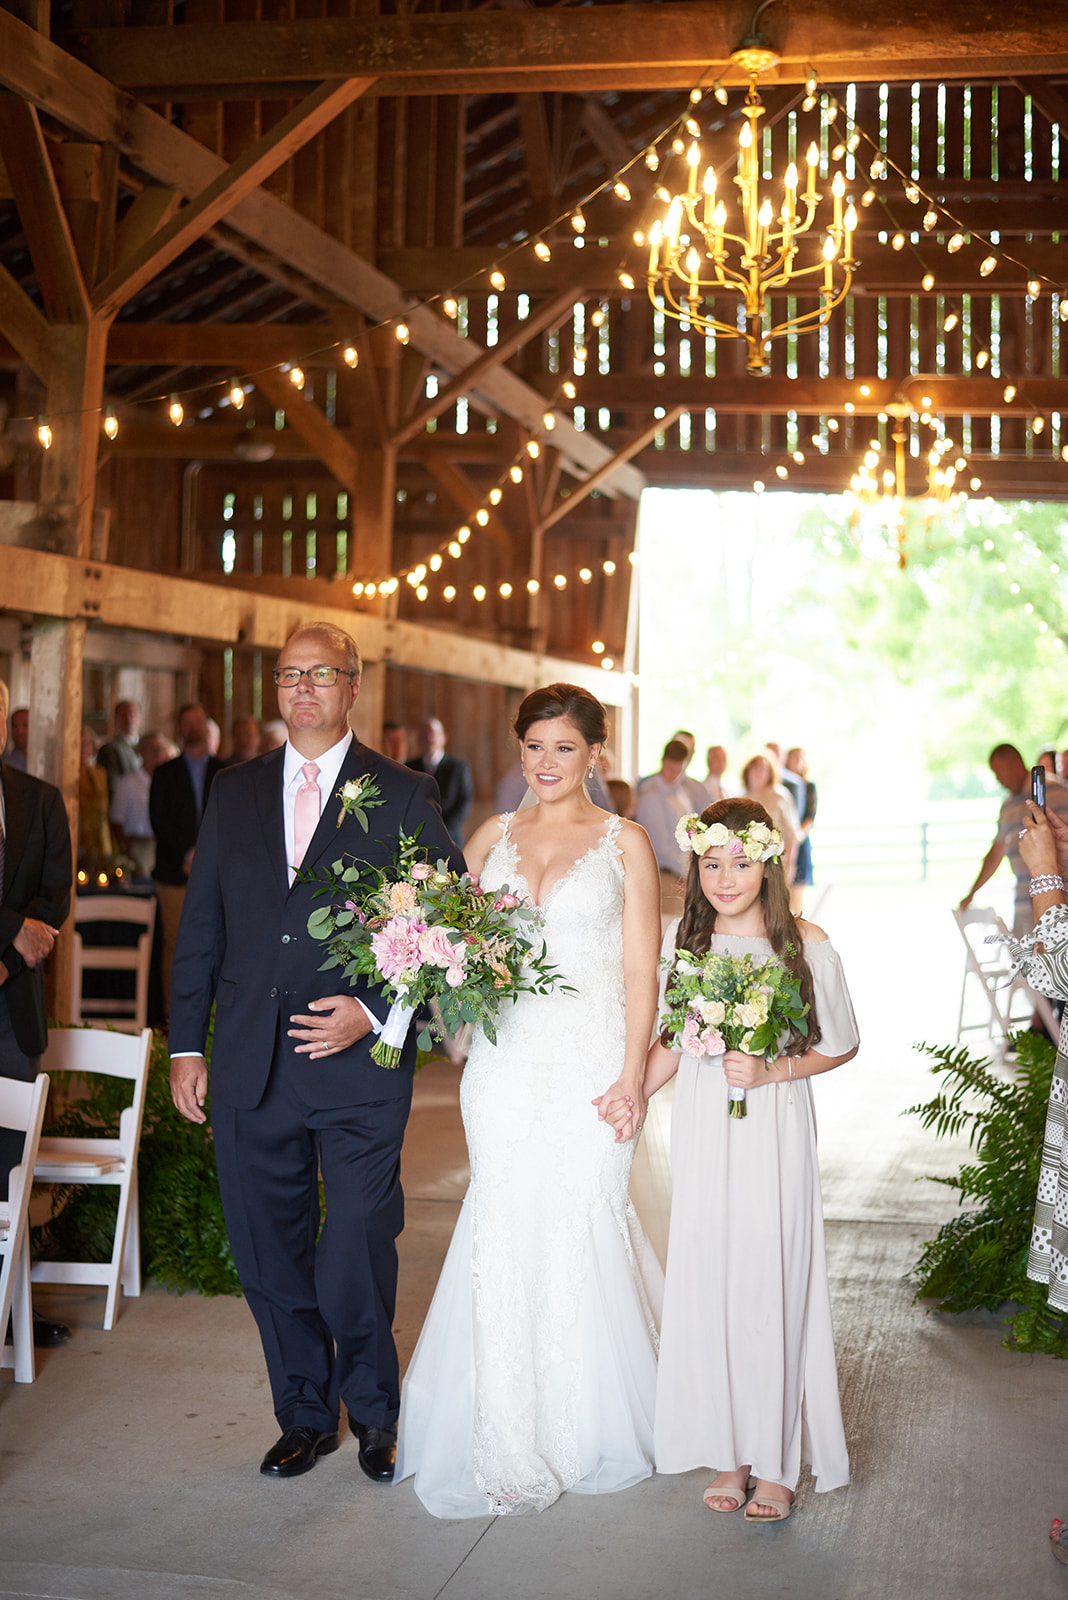 Bride being escorted into ceremony by father & daughter